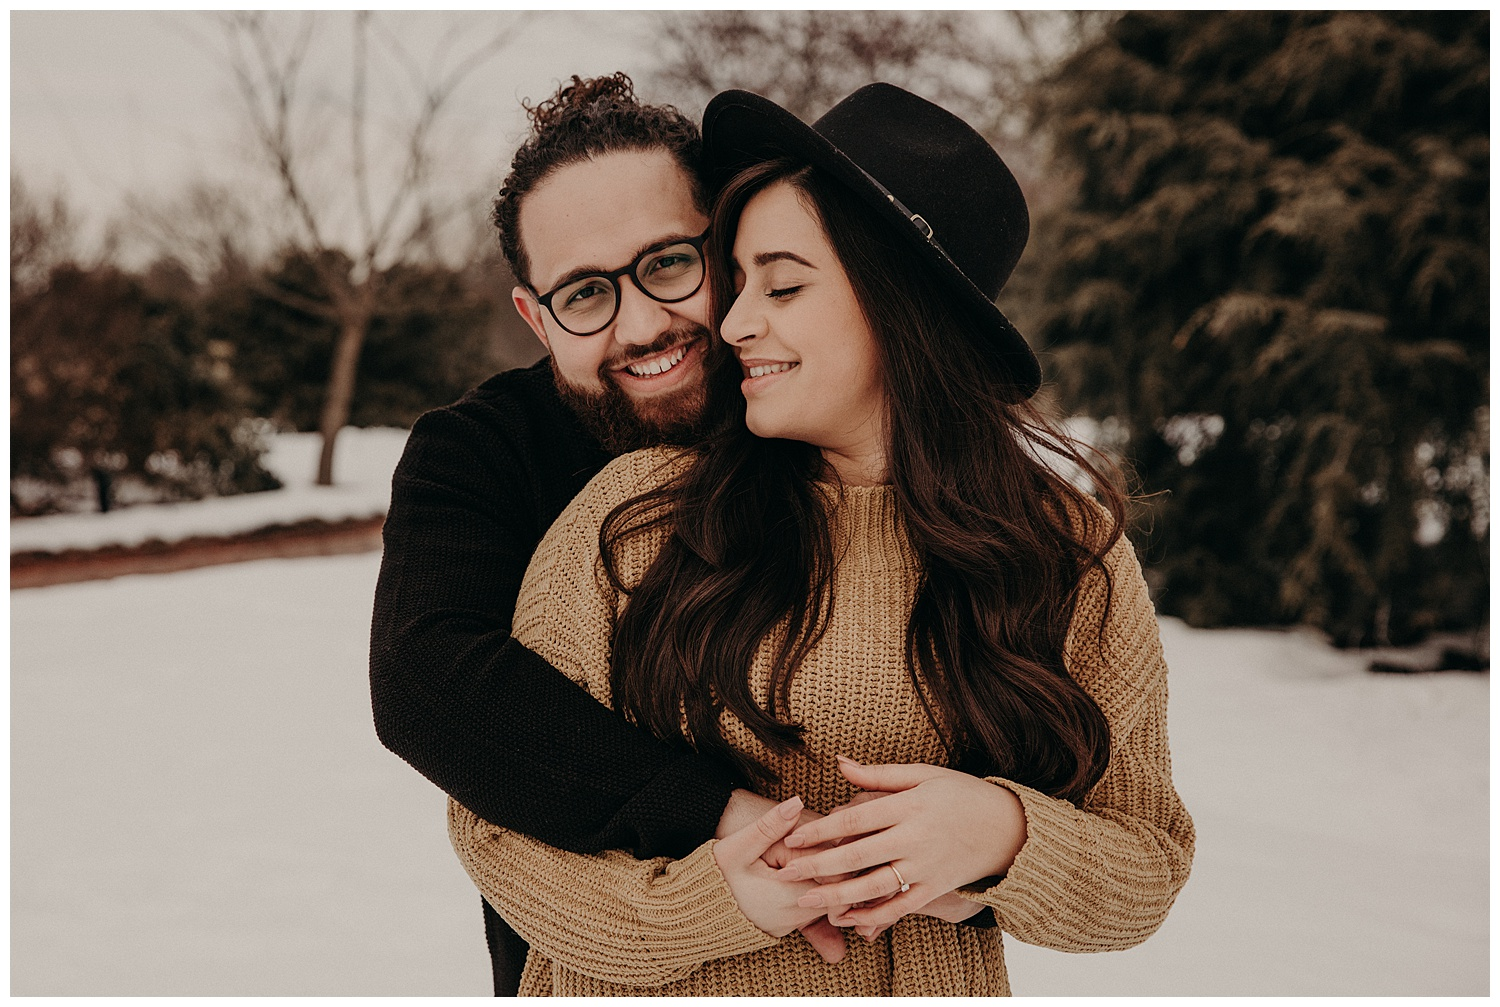 danilo-andrea-botanicals-winter-engagement-session-boston-massachusetts14.jpg